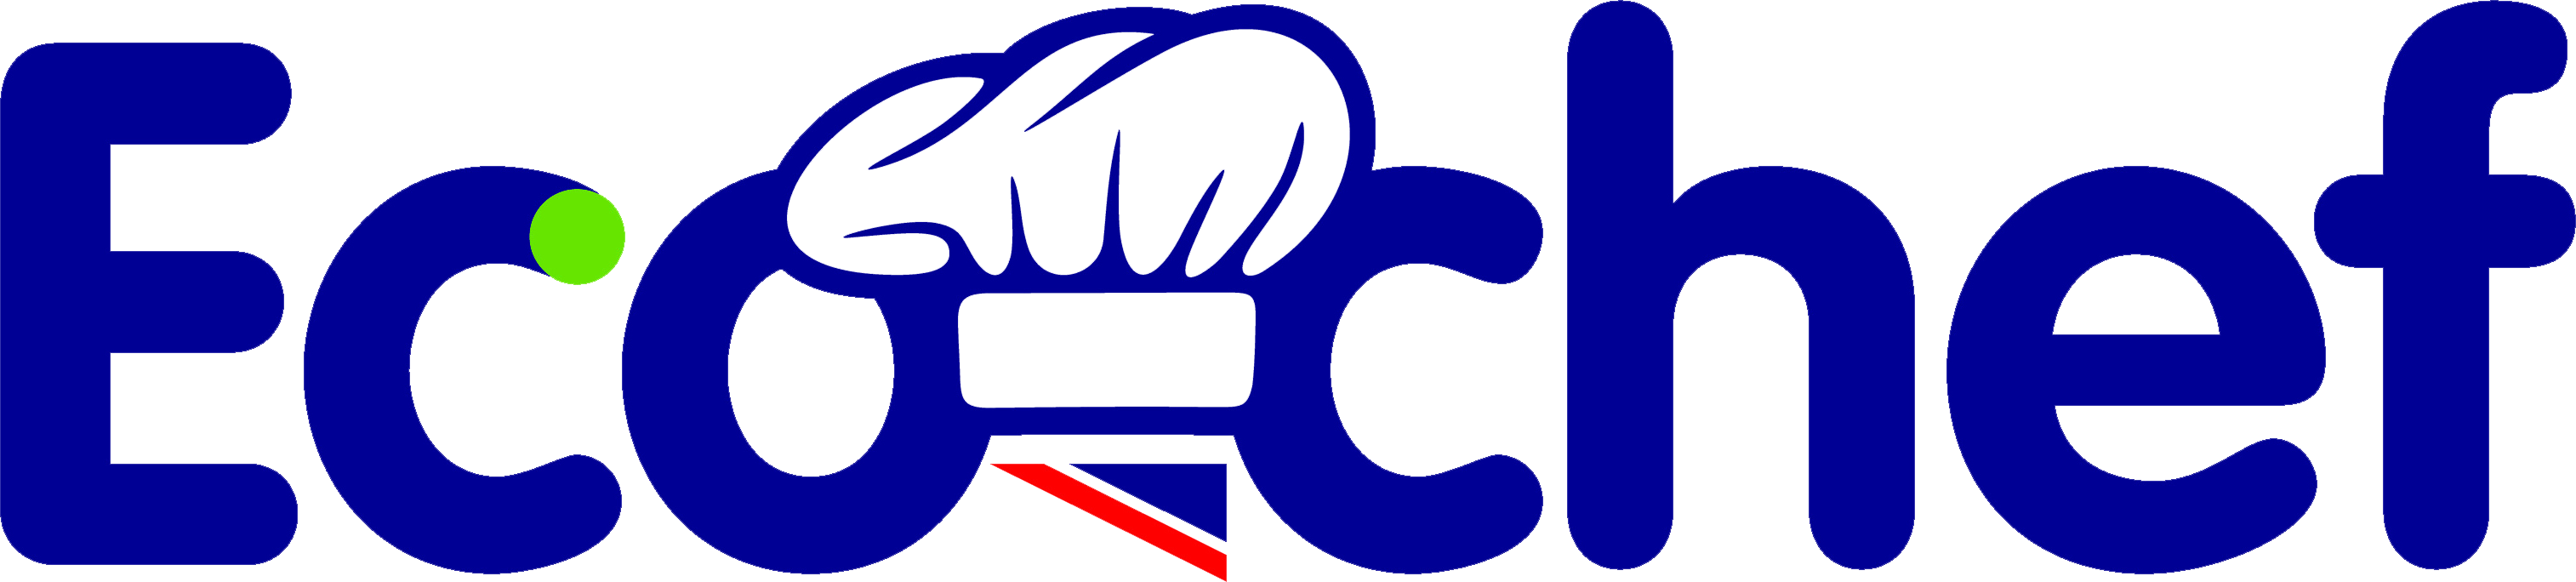 Eco Chef Logo